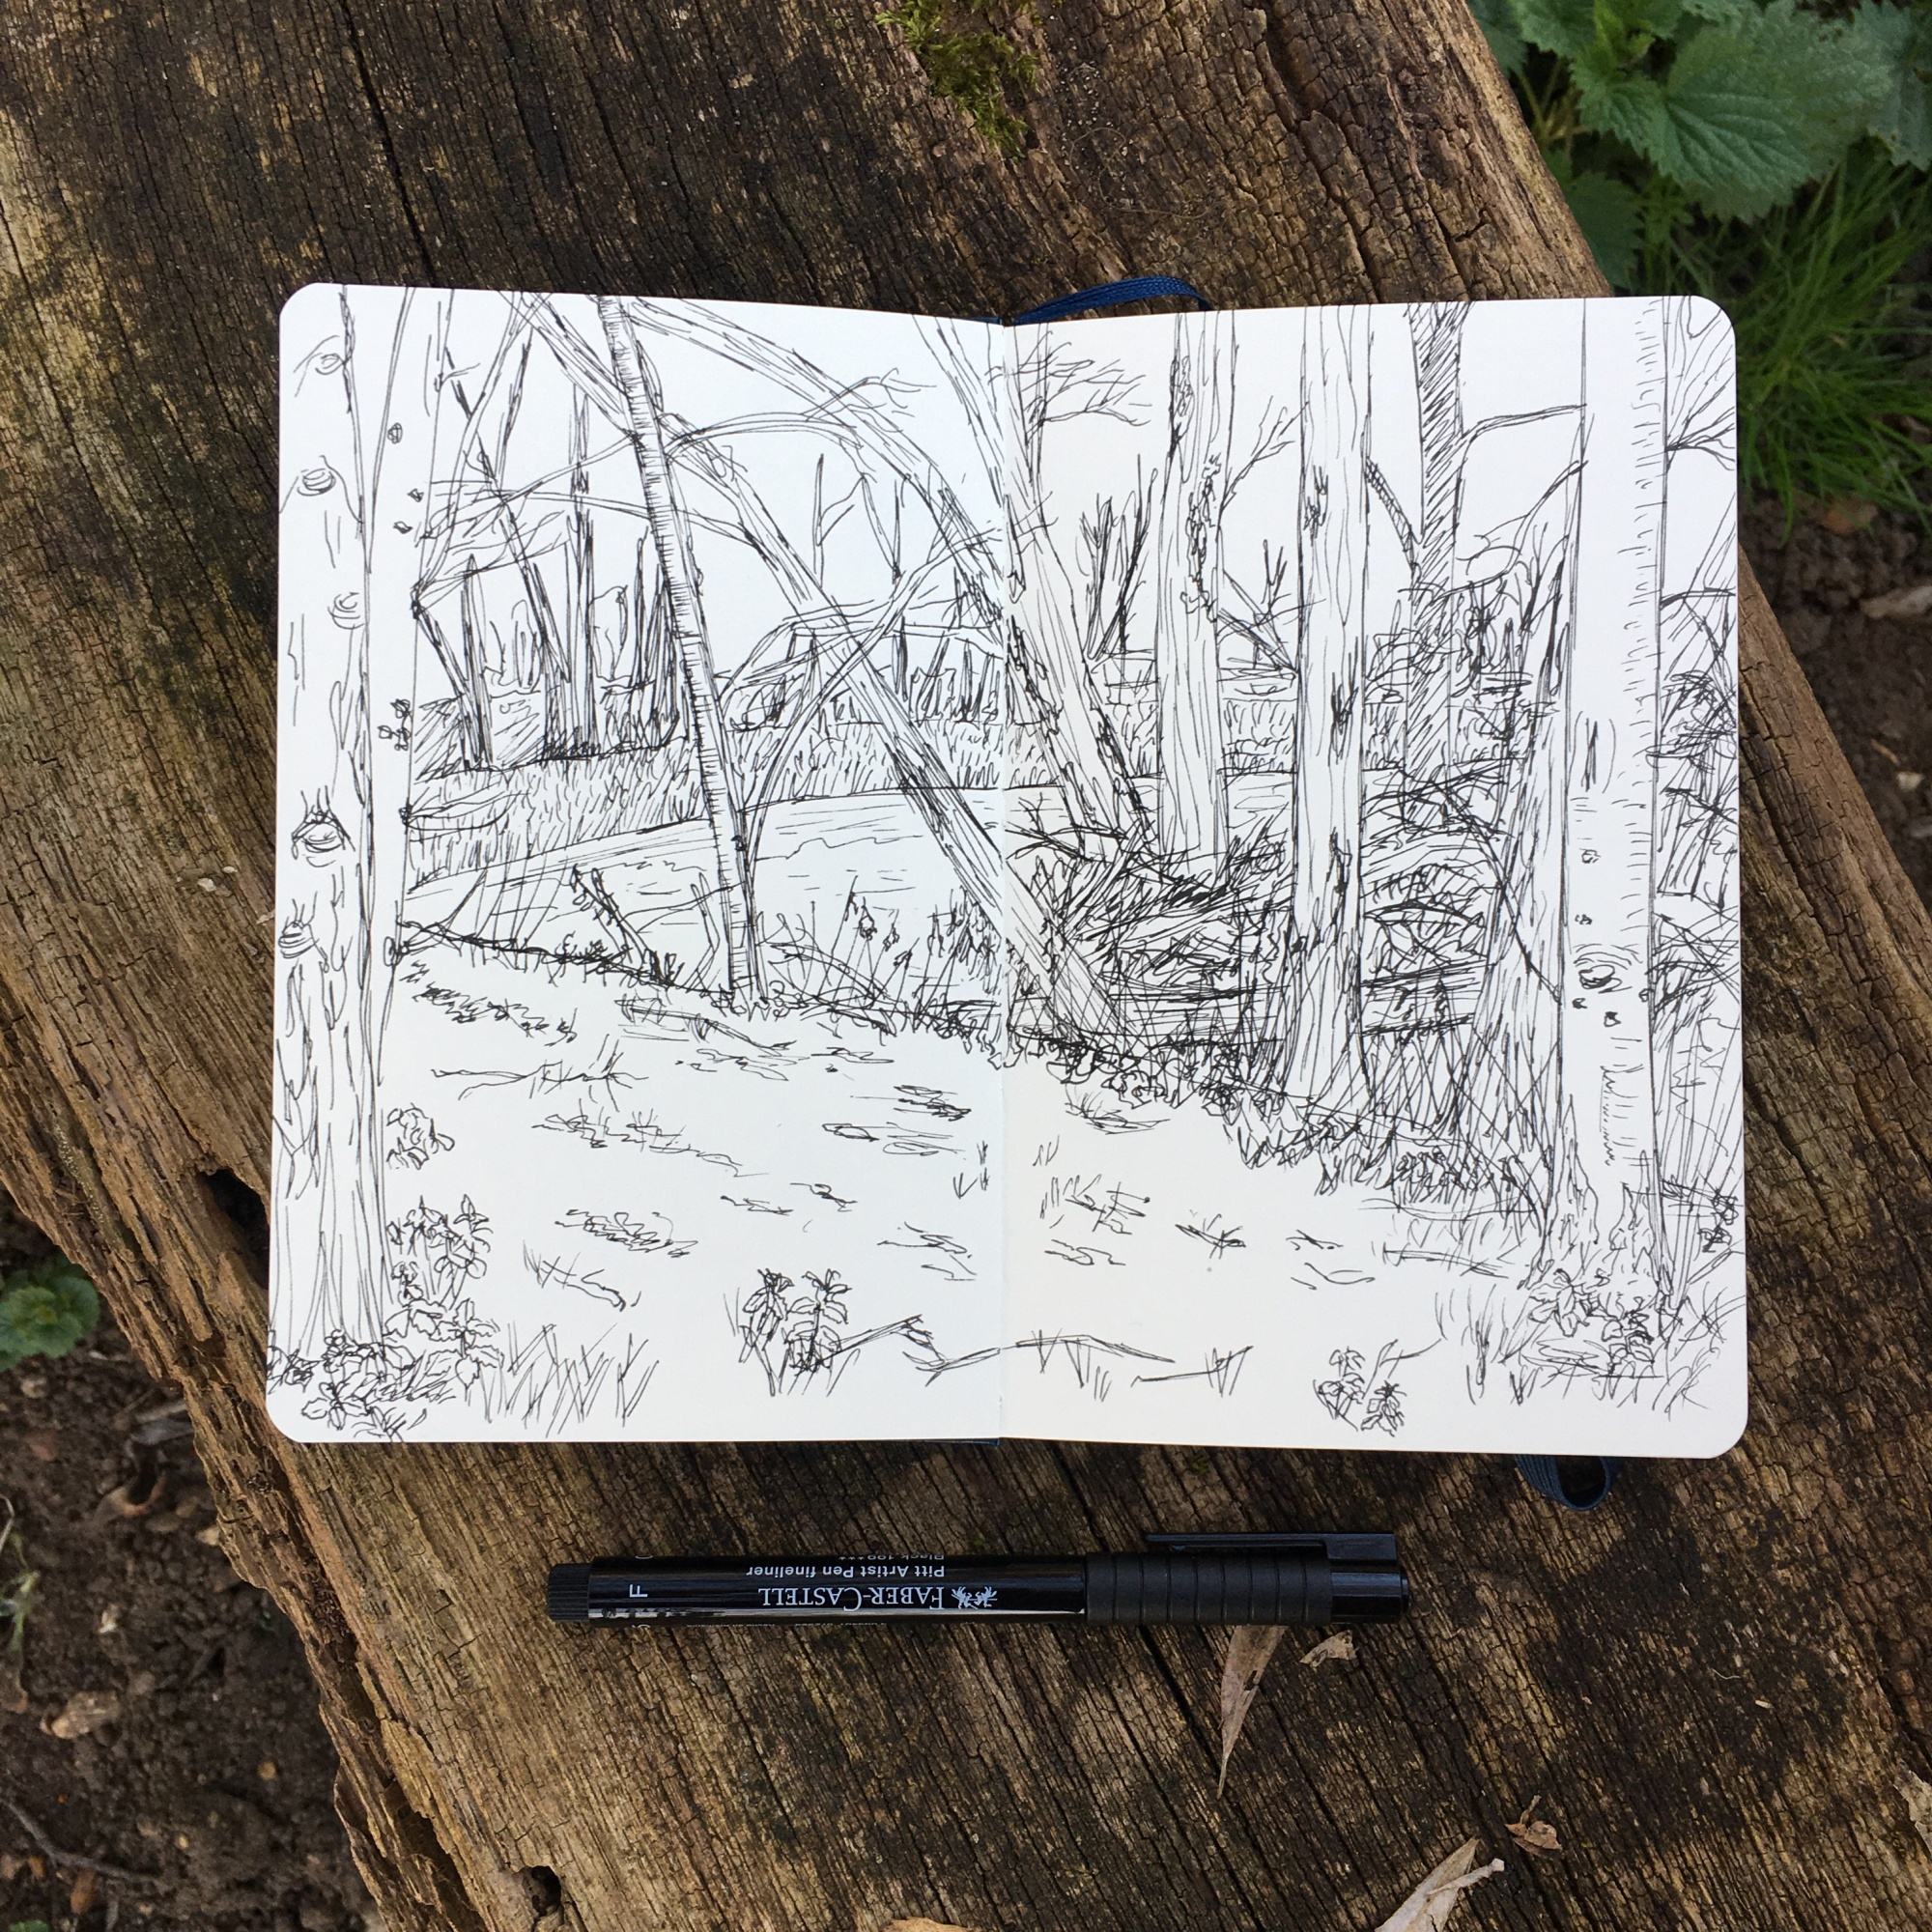 Image shows an open sketchbook lying on a rough wooden bench. On the pages of the sketchbook is a rough pen sketch of trees surrounding water and marshland.